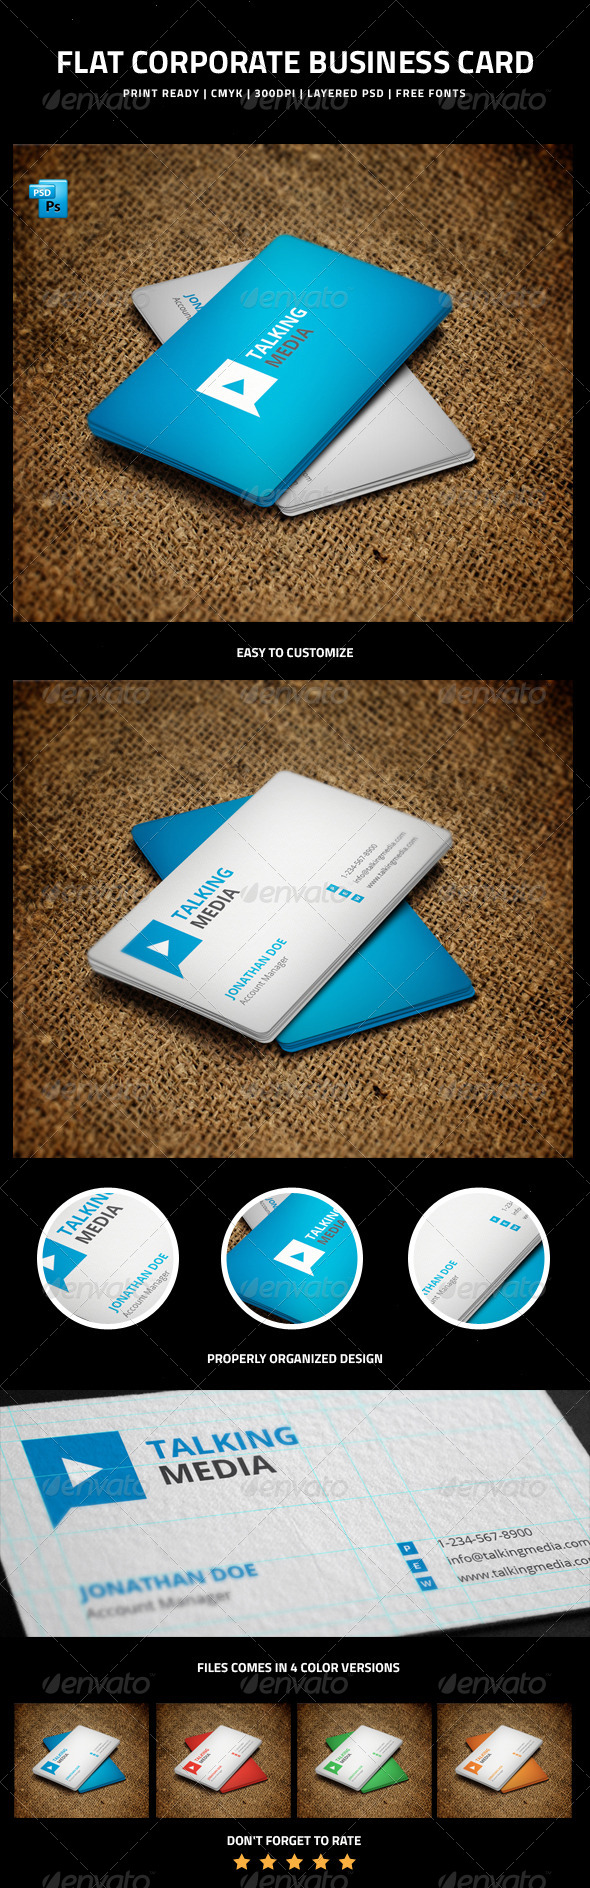 GraphicRiver Flat Corporate Business Card 6256402